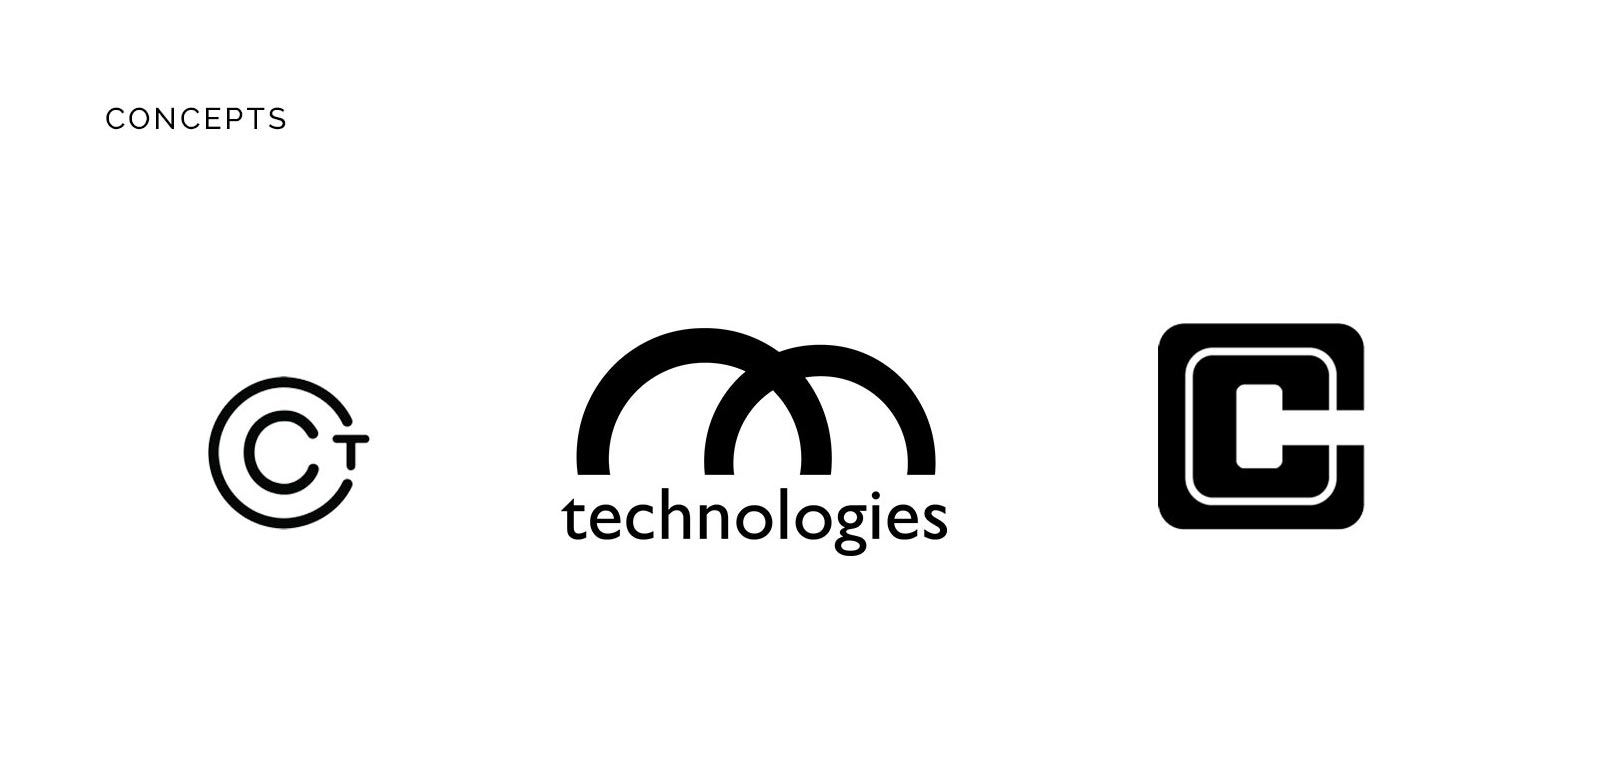 Concepts for the new cutting chai tech logo